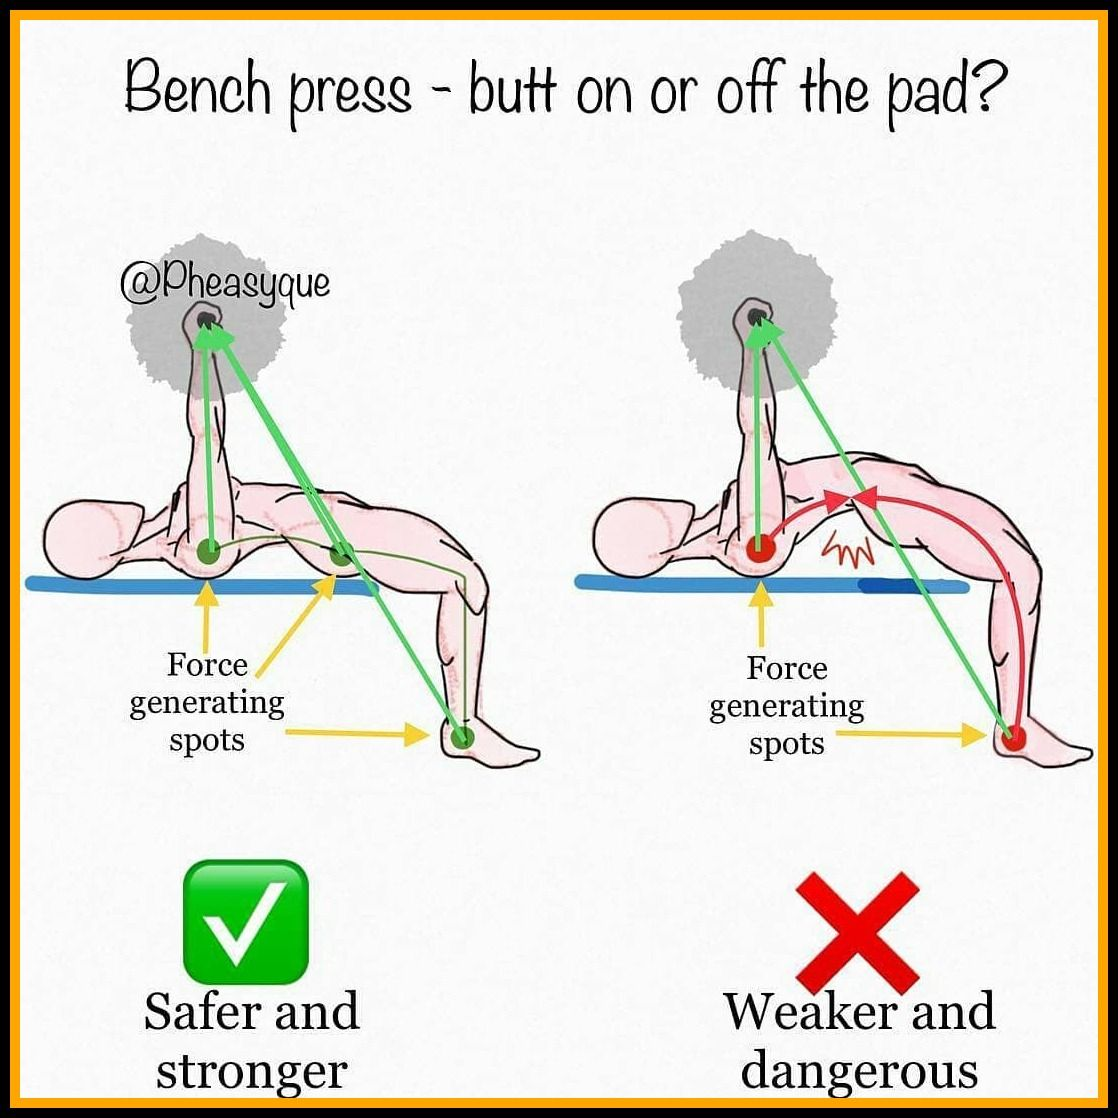 56 Reference Of Bench Press Proper Form Reddit In 2020 Bench Press Chest Workouts Gym Workout Tips